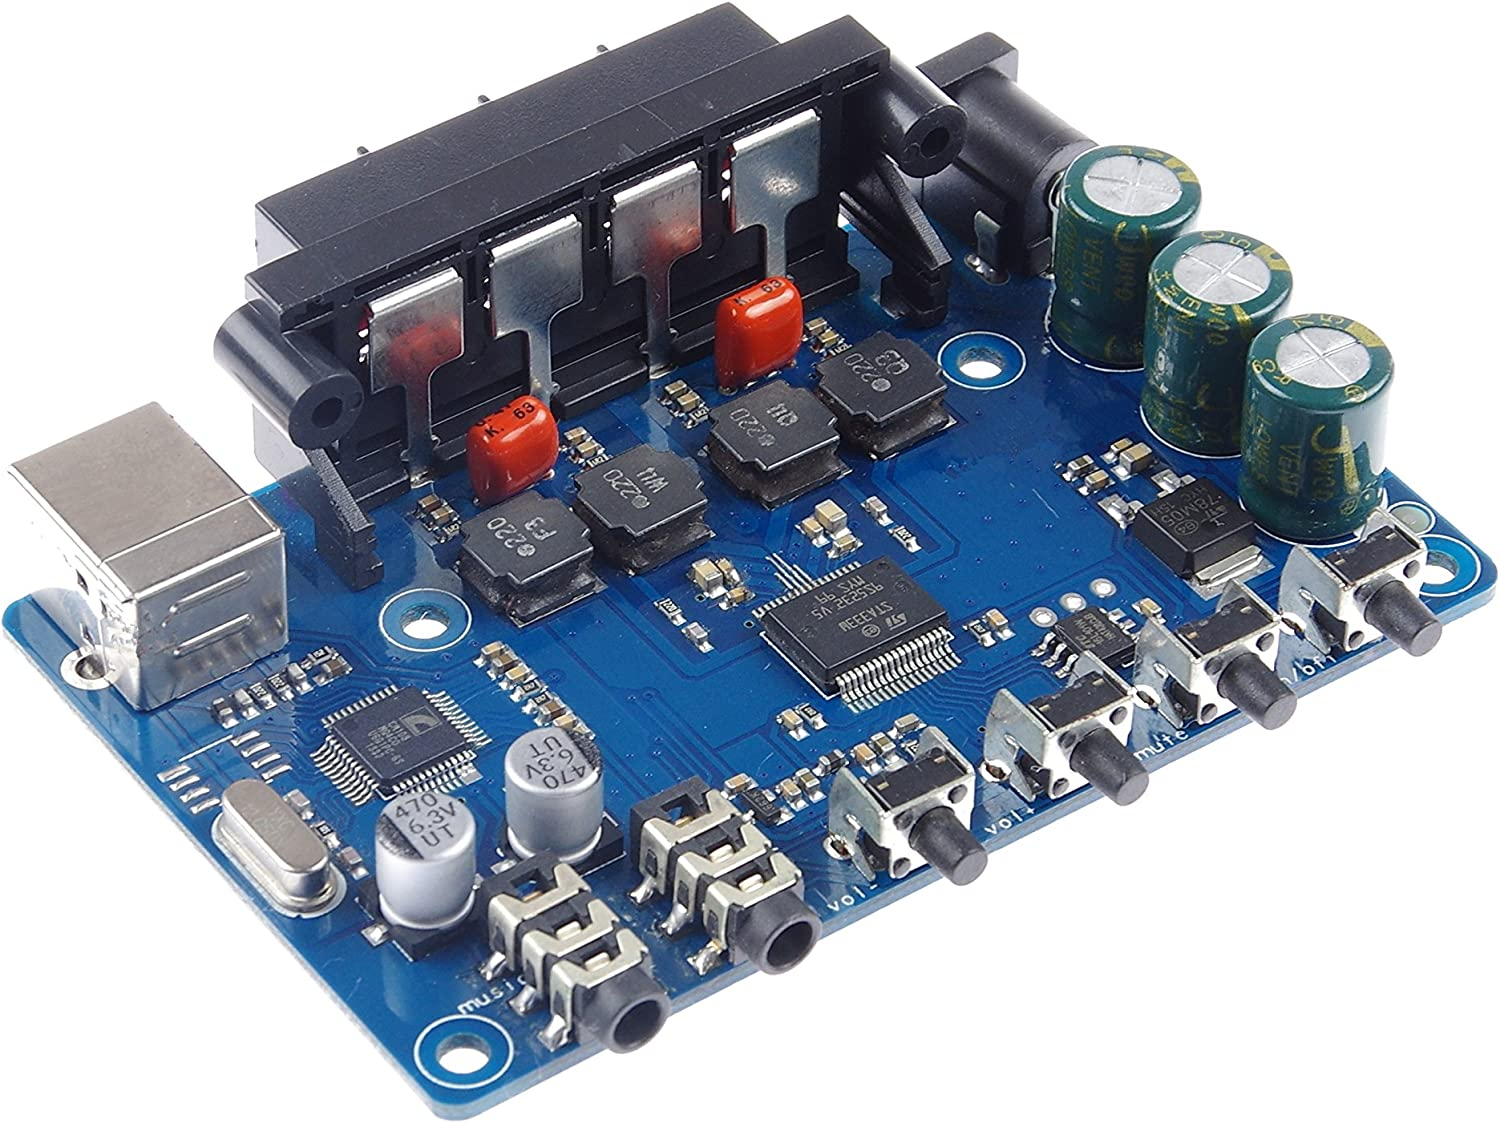 KNACRO Digital Power Amplifier Board With Attention brand Sound Stereo USB Max 77% OFF 220W